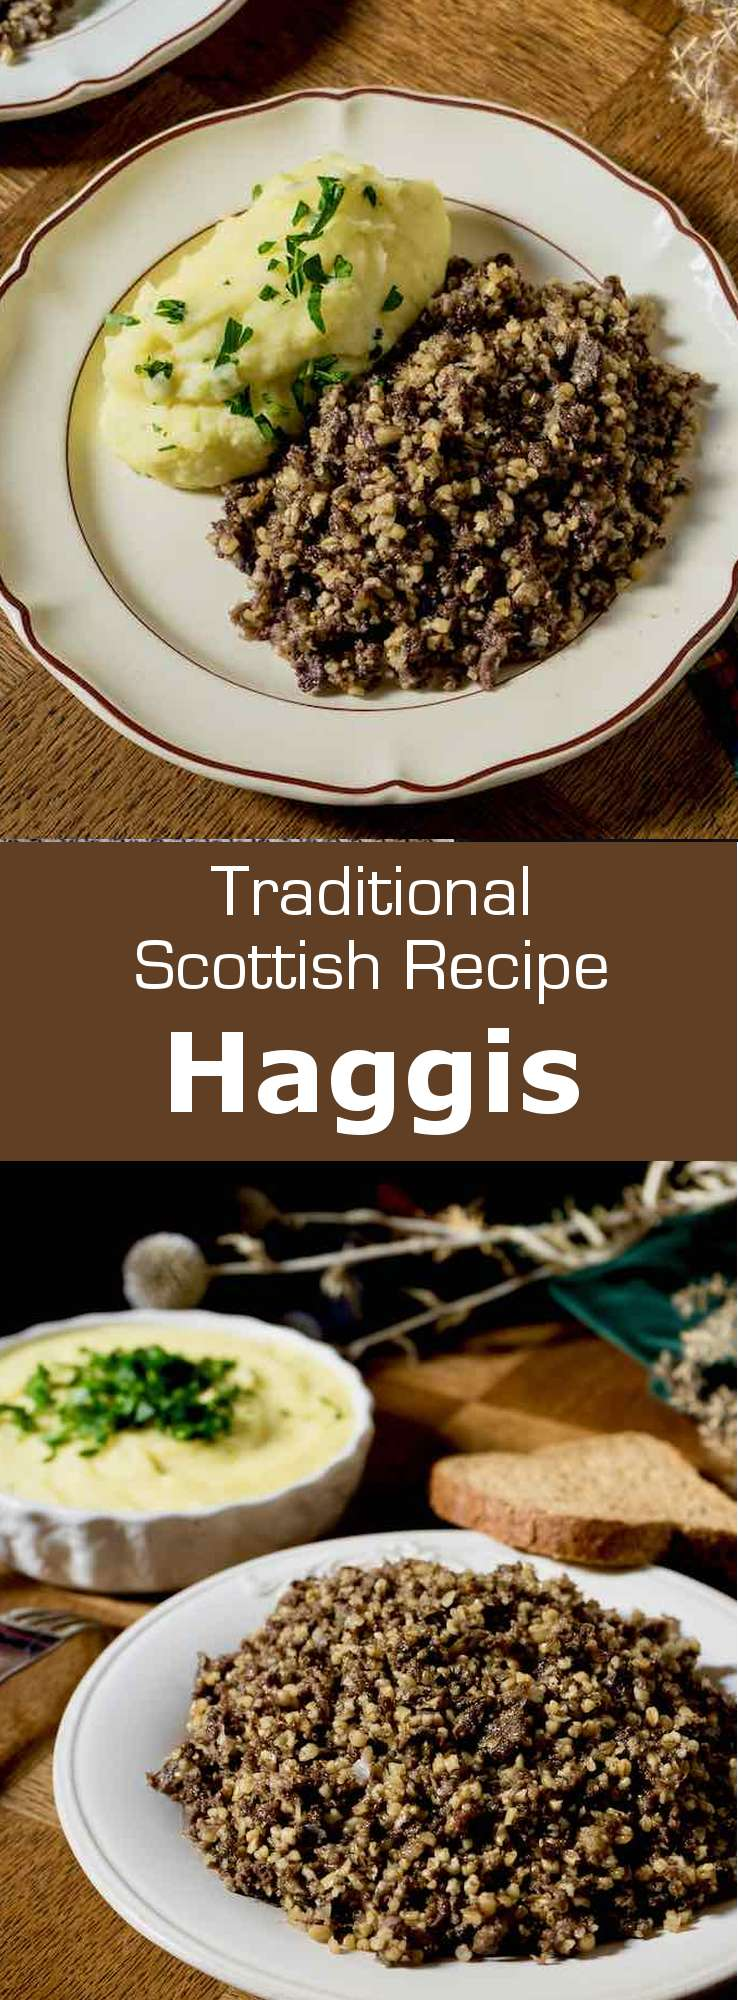 Haggis is a traditional Scottish dish consisting of seasoned and spiced minced sheep's pluck cooked in the animal stomach. #UnitedKingdom #Scotland #ScottishCuisine #EnglishCuisine #BritishCuisine #ScottishFood #EnglishFood #BritishFood #ScottishRecipe #EnglishRecipe #BritishRecipe #WorldCuisine #196flavors